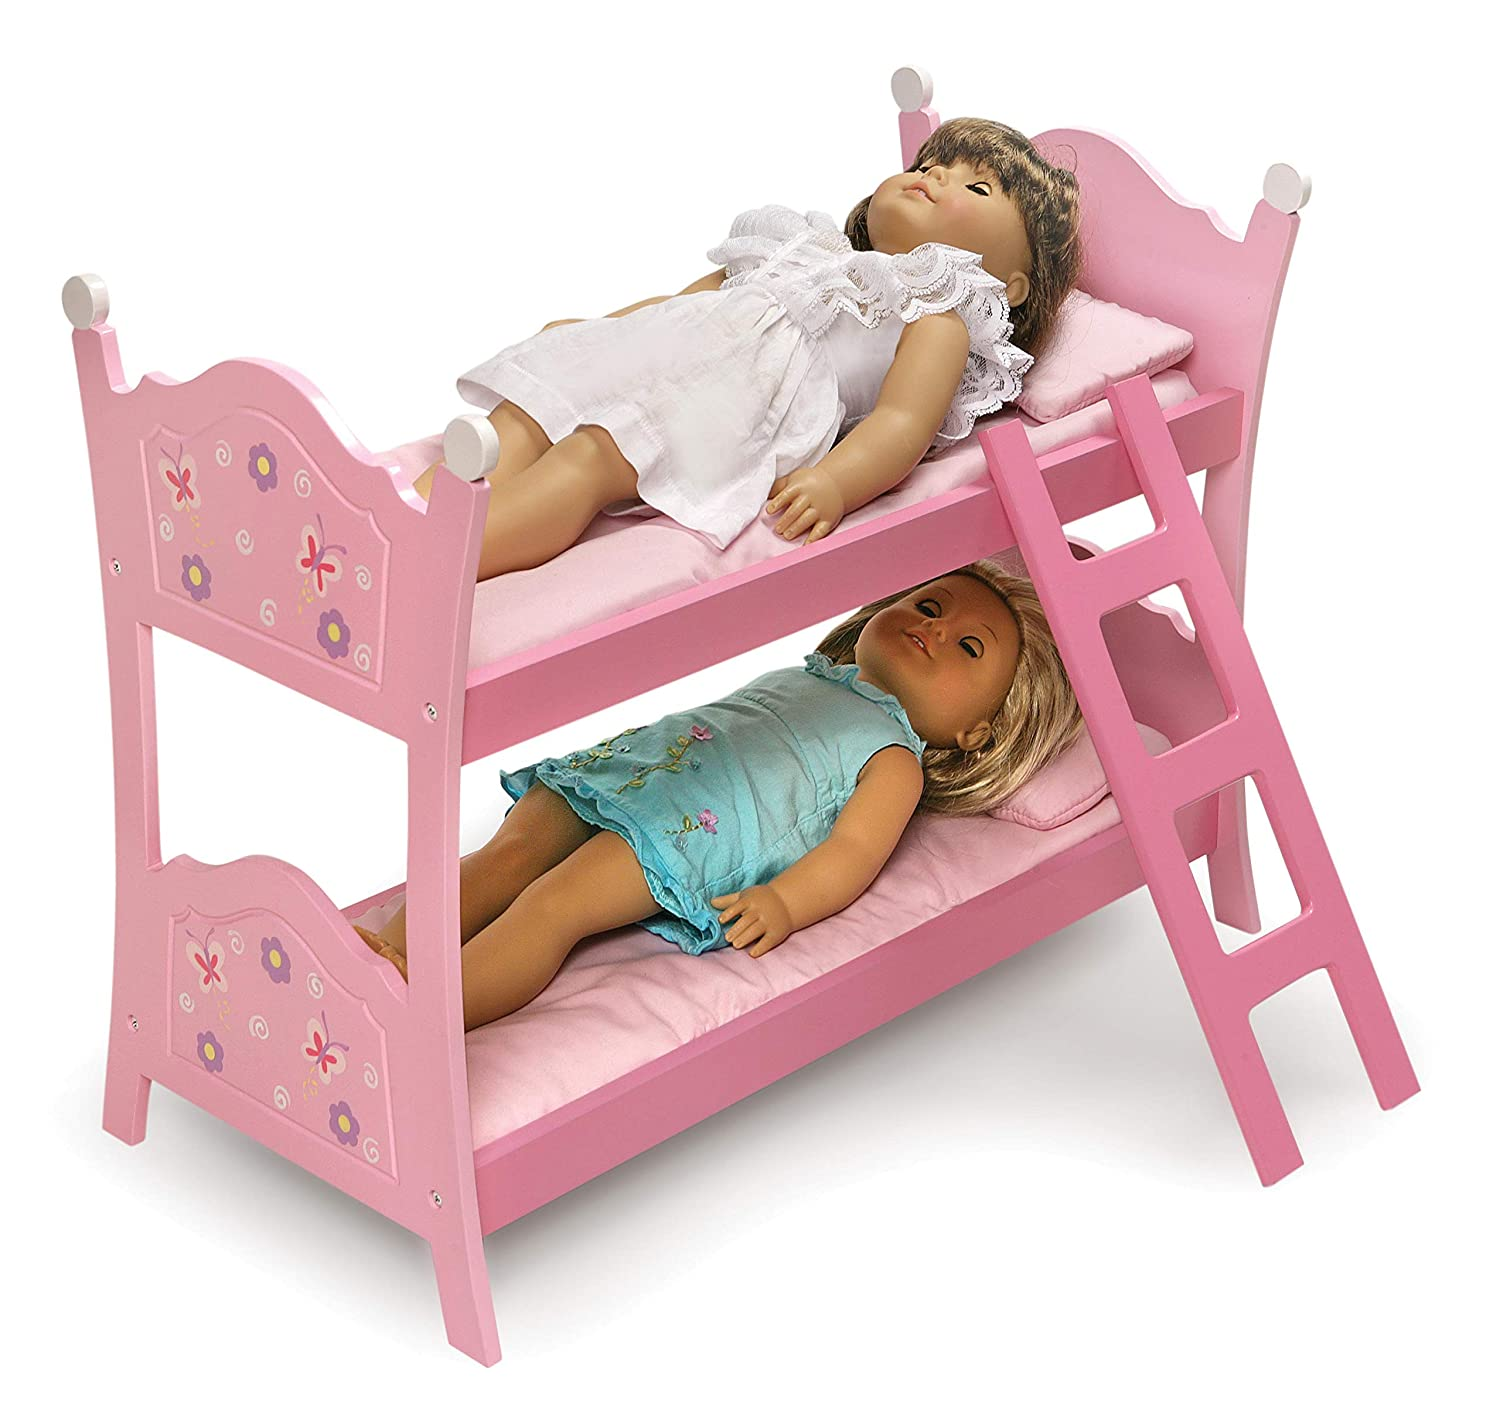 Badger Basket Blossoms and Butterflies Doll Bunk Beds with Ladder fits American Girl dolls 01854